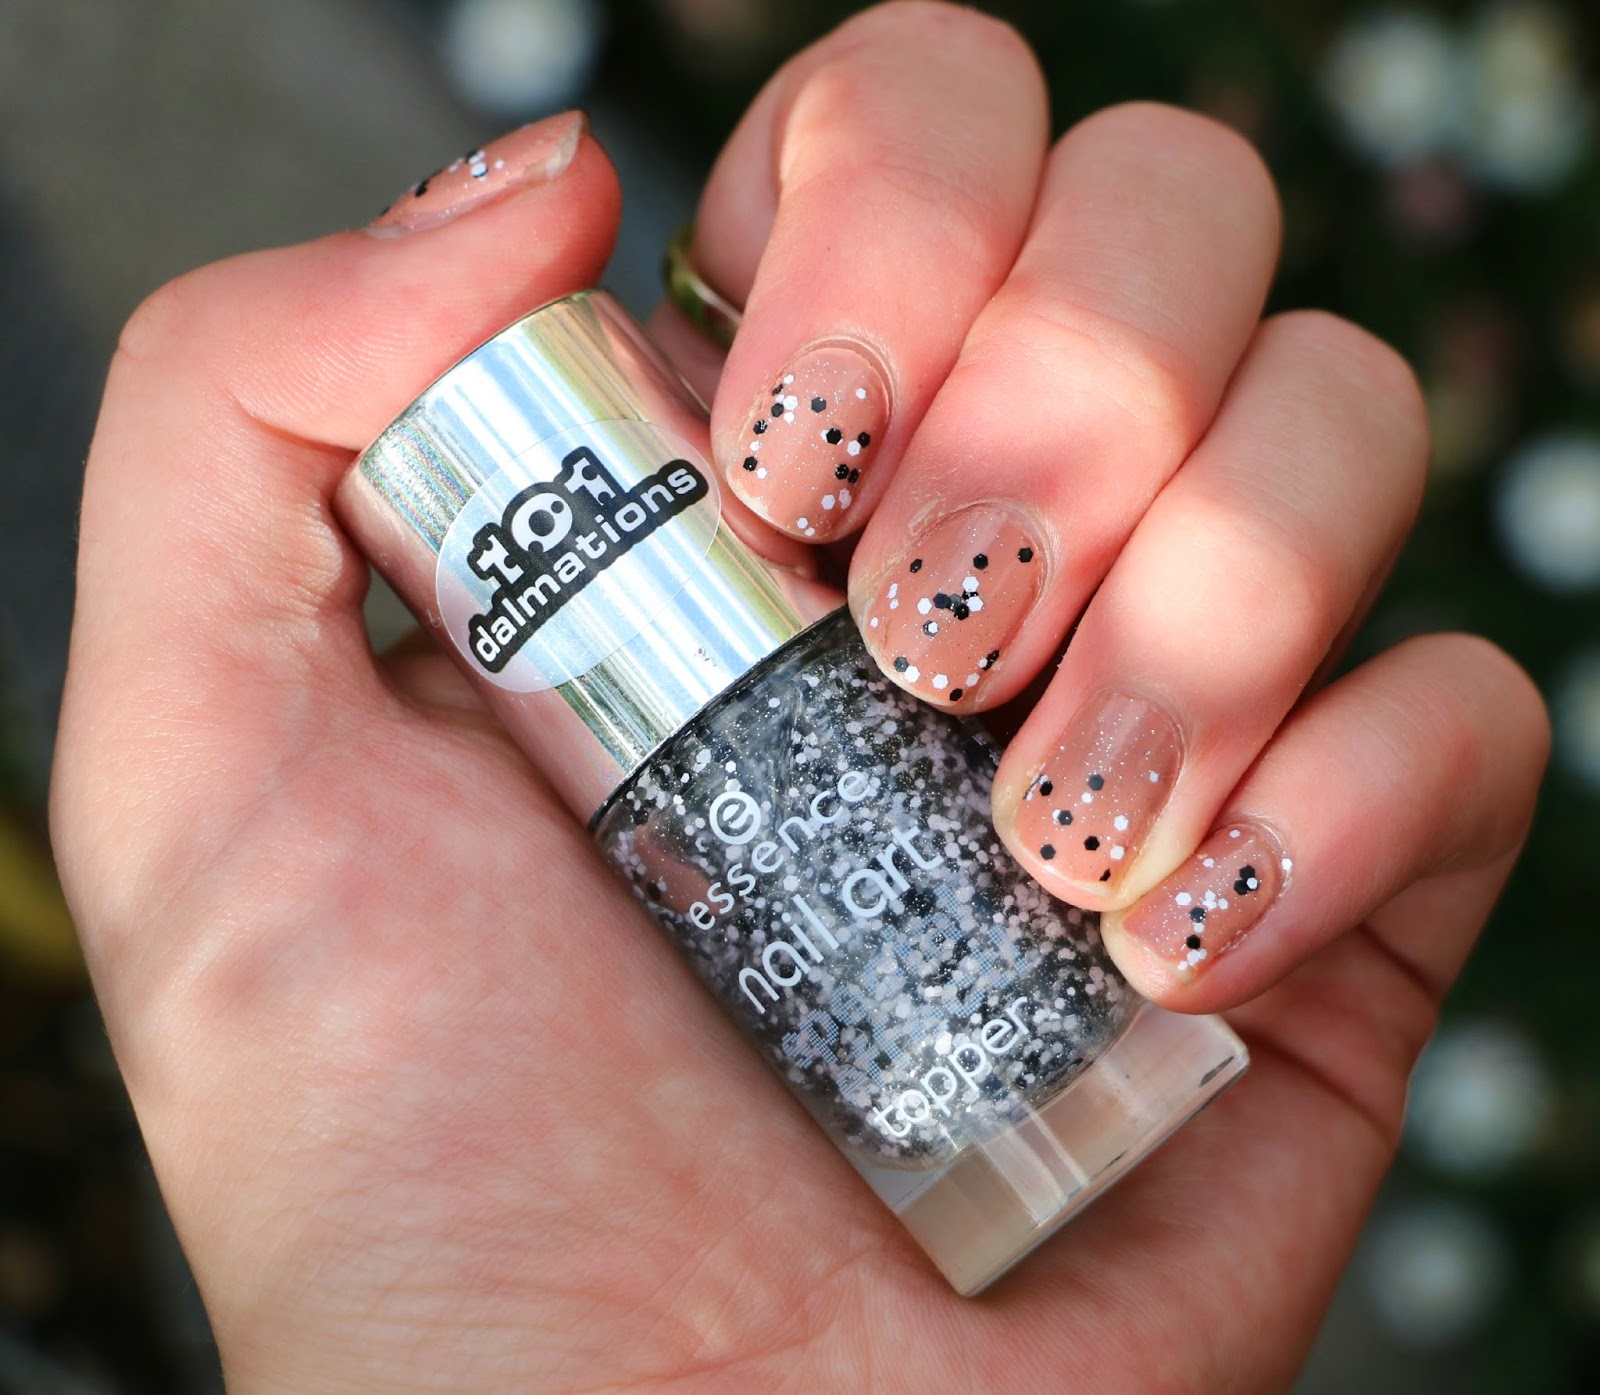 Youreview Essence Nail Art Special Effect Topper In Black Dress And